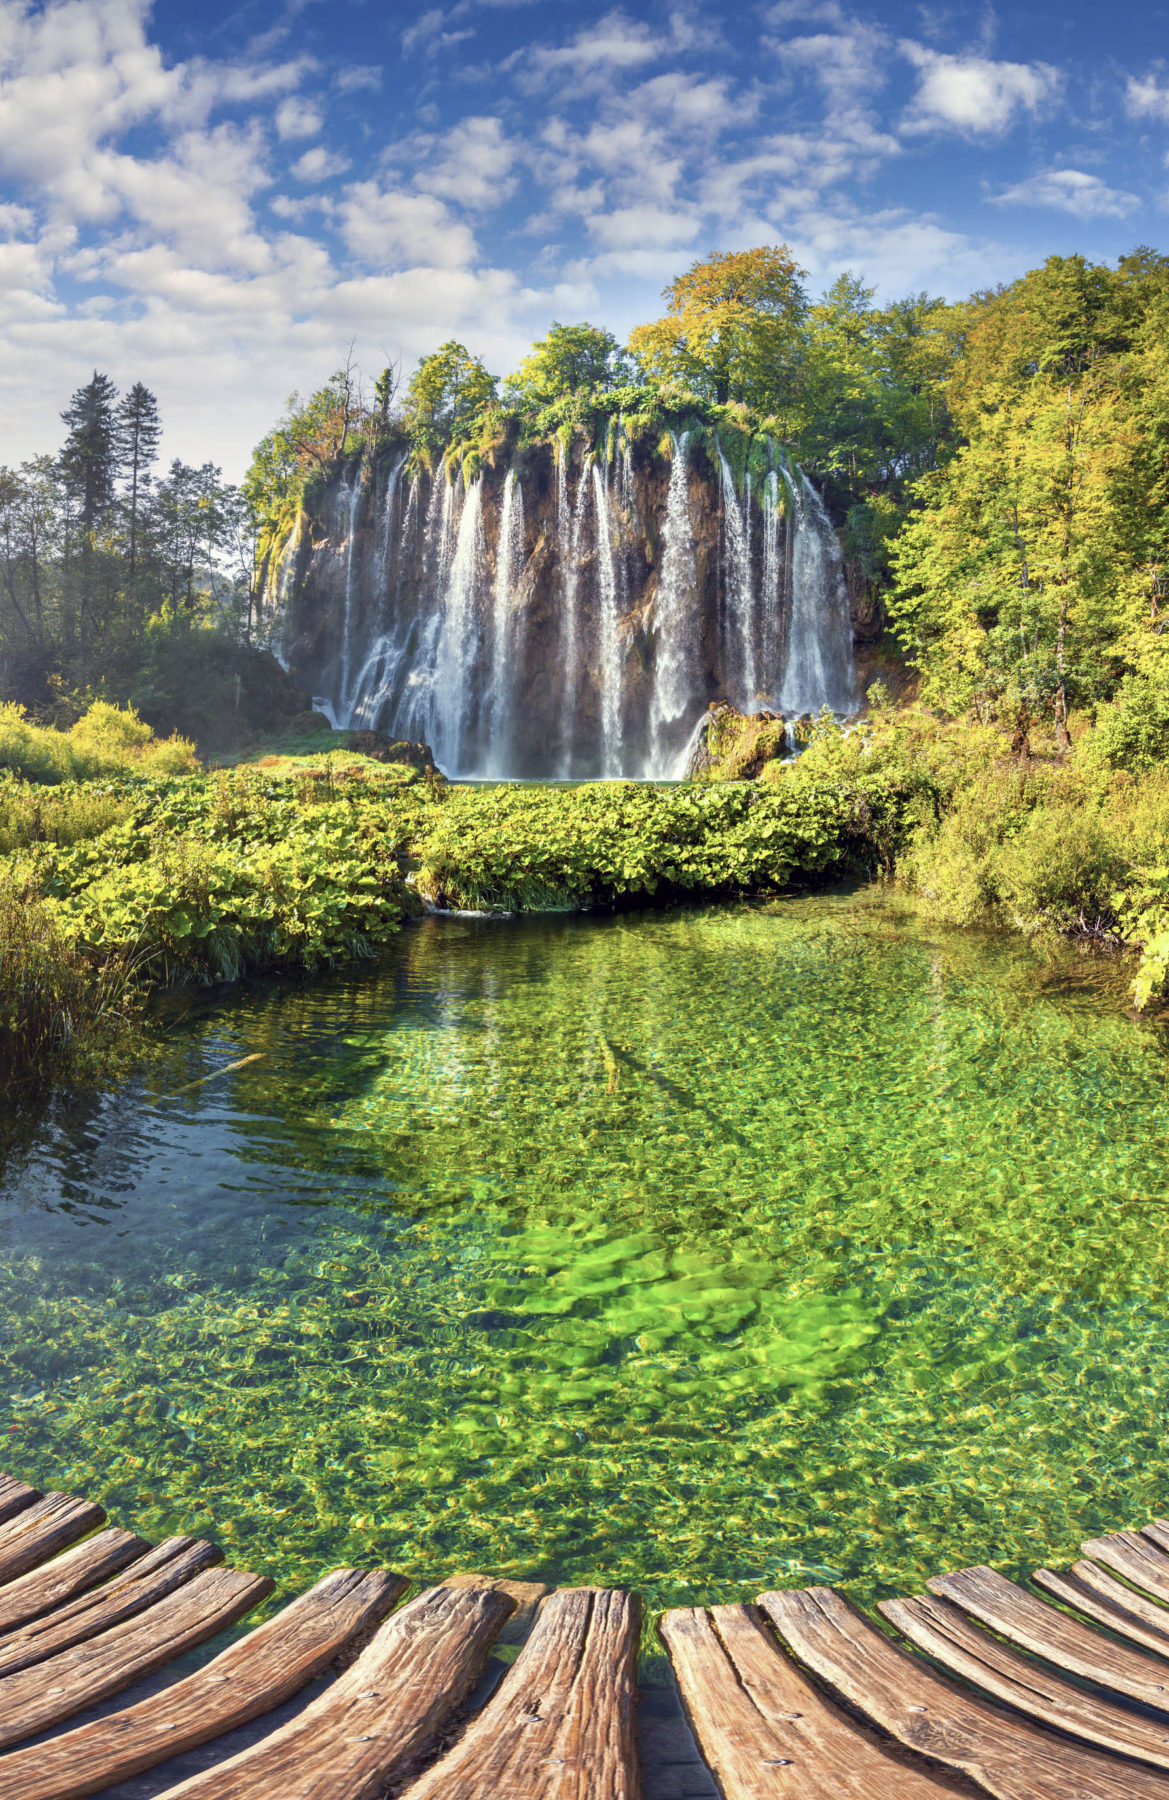 Falls cascading off a cliff into clear lakes at Plitvice Lakes National Park